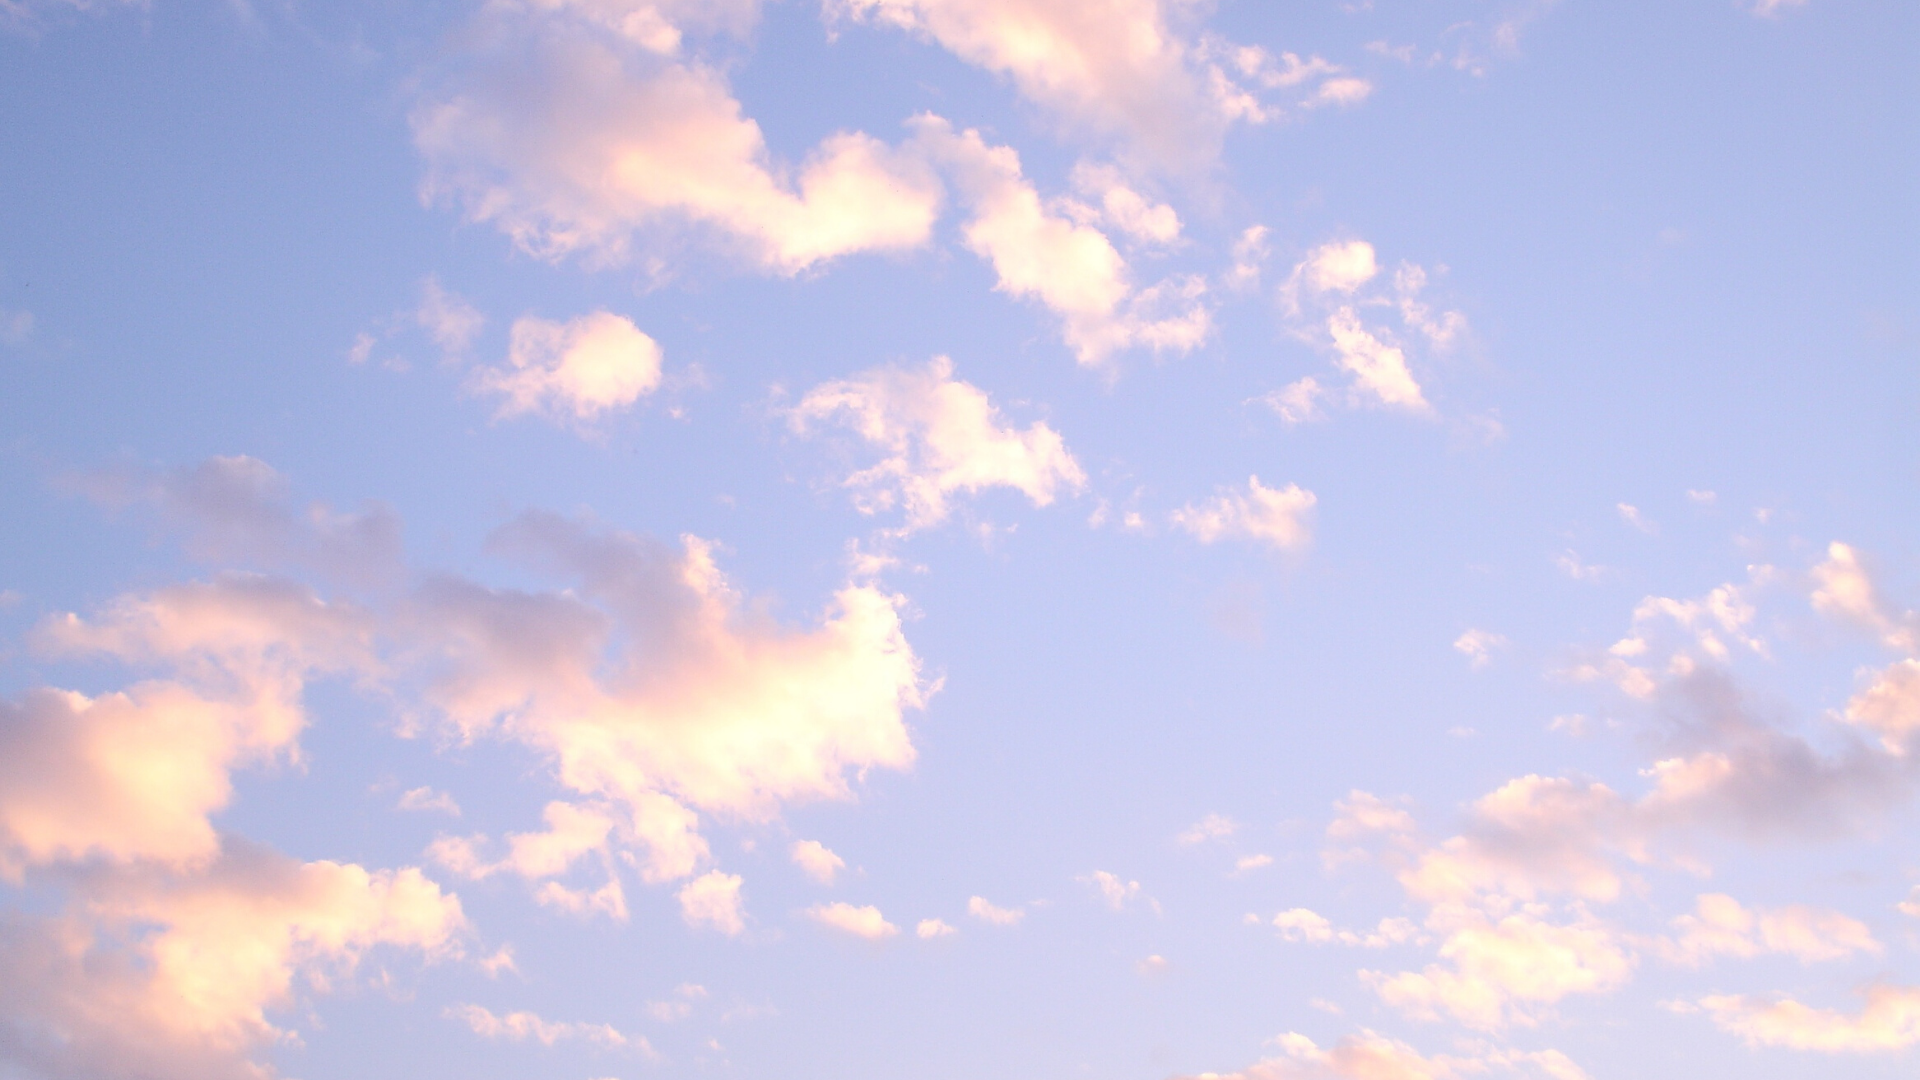 Cloudy Aesthetic Skies Tumblr Free Macbook Wallpaper Background Laptop And Desktop Screen Macbook Wallpaper Aesthetic Desktop Wallpaper Macbook Air Backgrounds